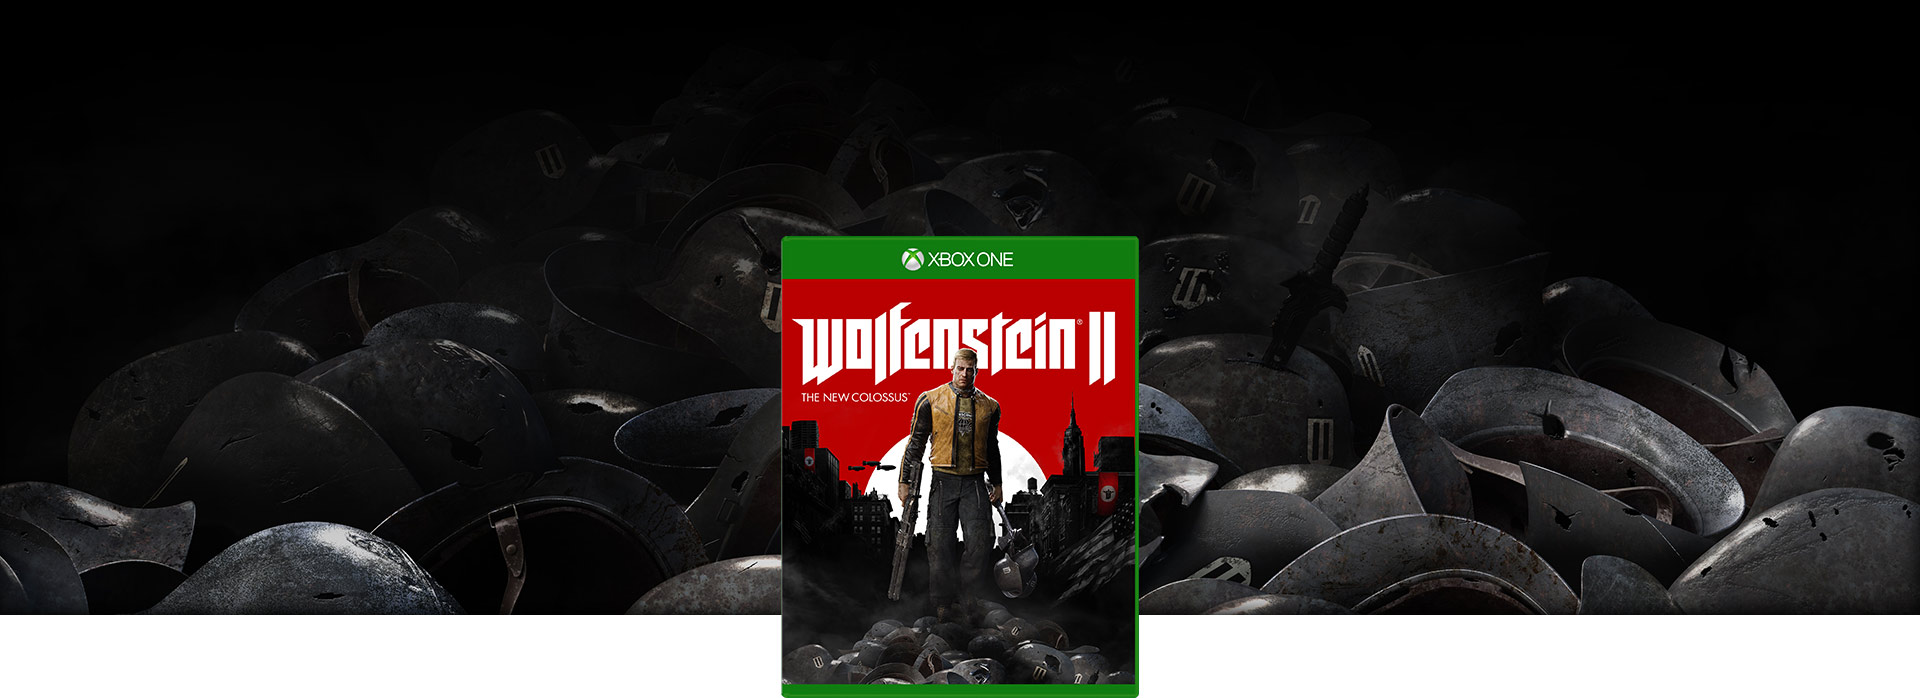 Wolfenstein II: The New Colossus boxshot – background shot of pile of german army helmets